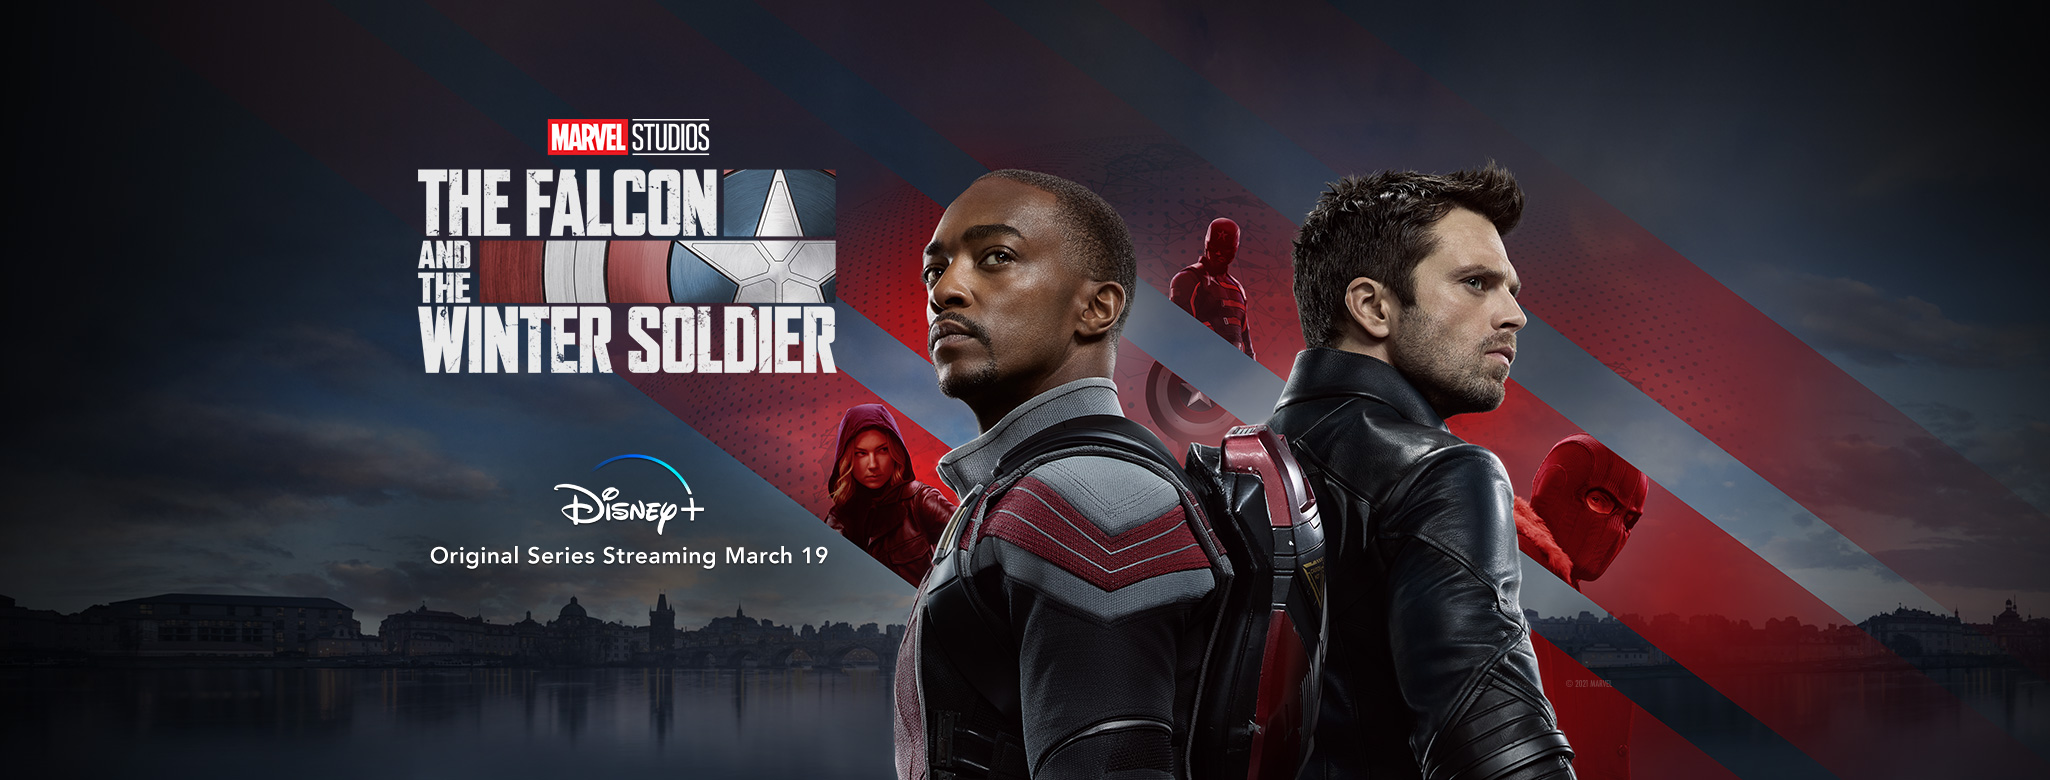 The Falcon & The Winter Soldier  EuqNfDZXcAIU4Lo?format=jpg&name=4096x4096